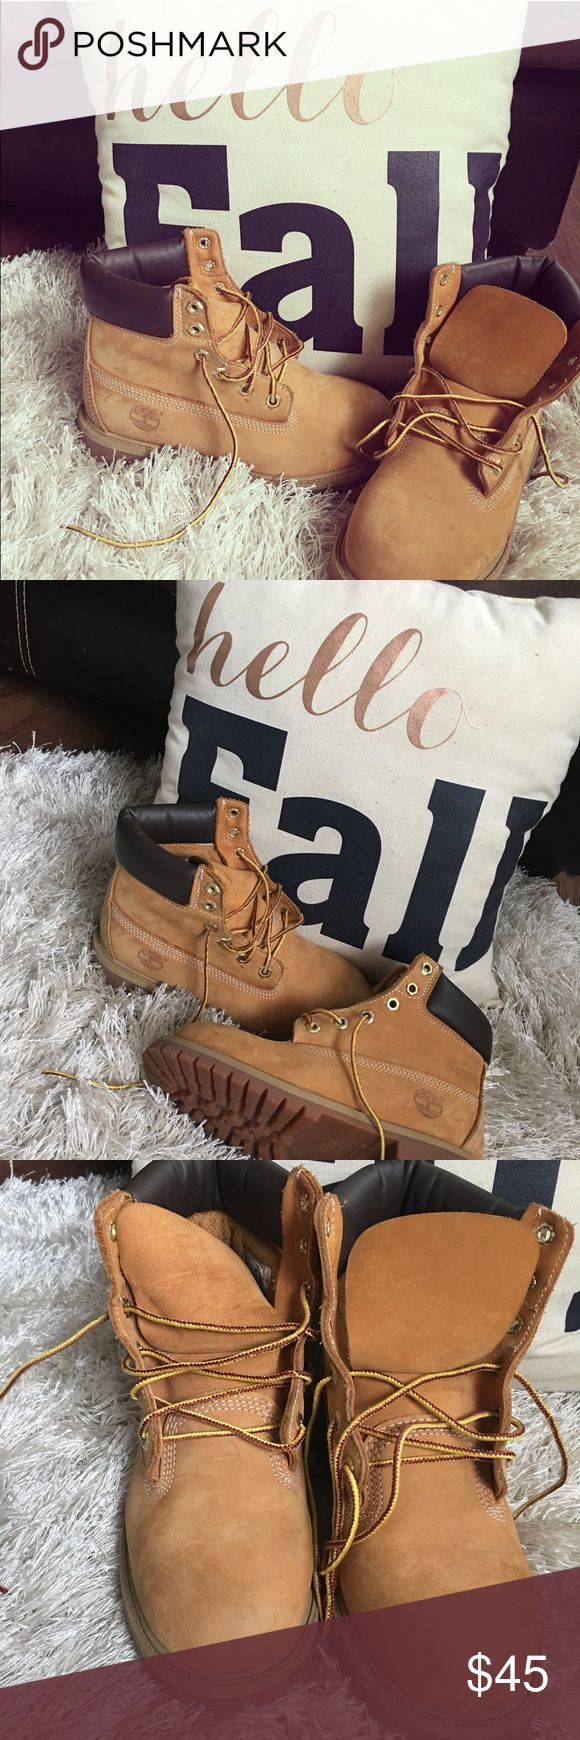 Wheat Timberland Fall Boots  Wheat Timberland Boots only worn a couple times. Size 4M Timberland Shoes Boots